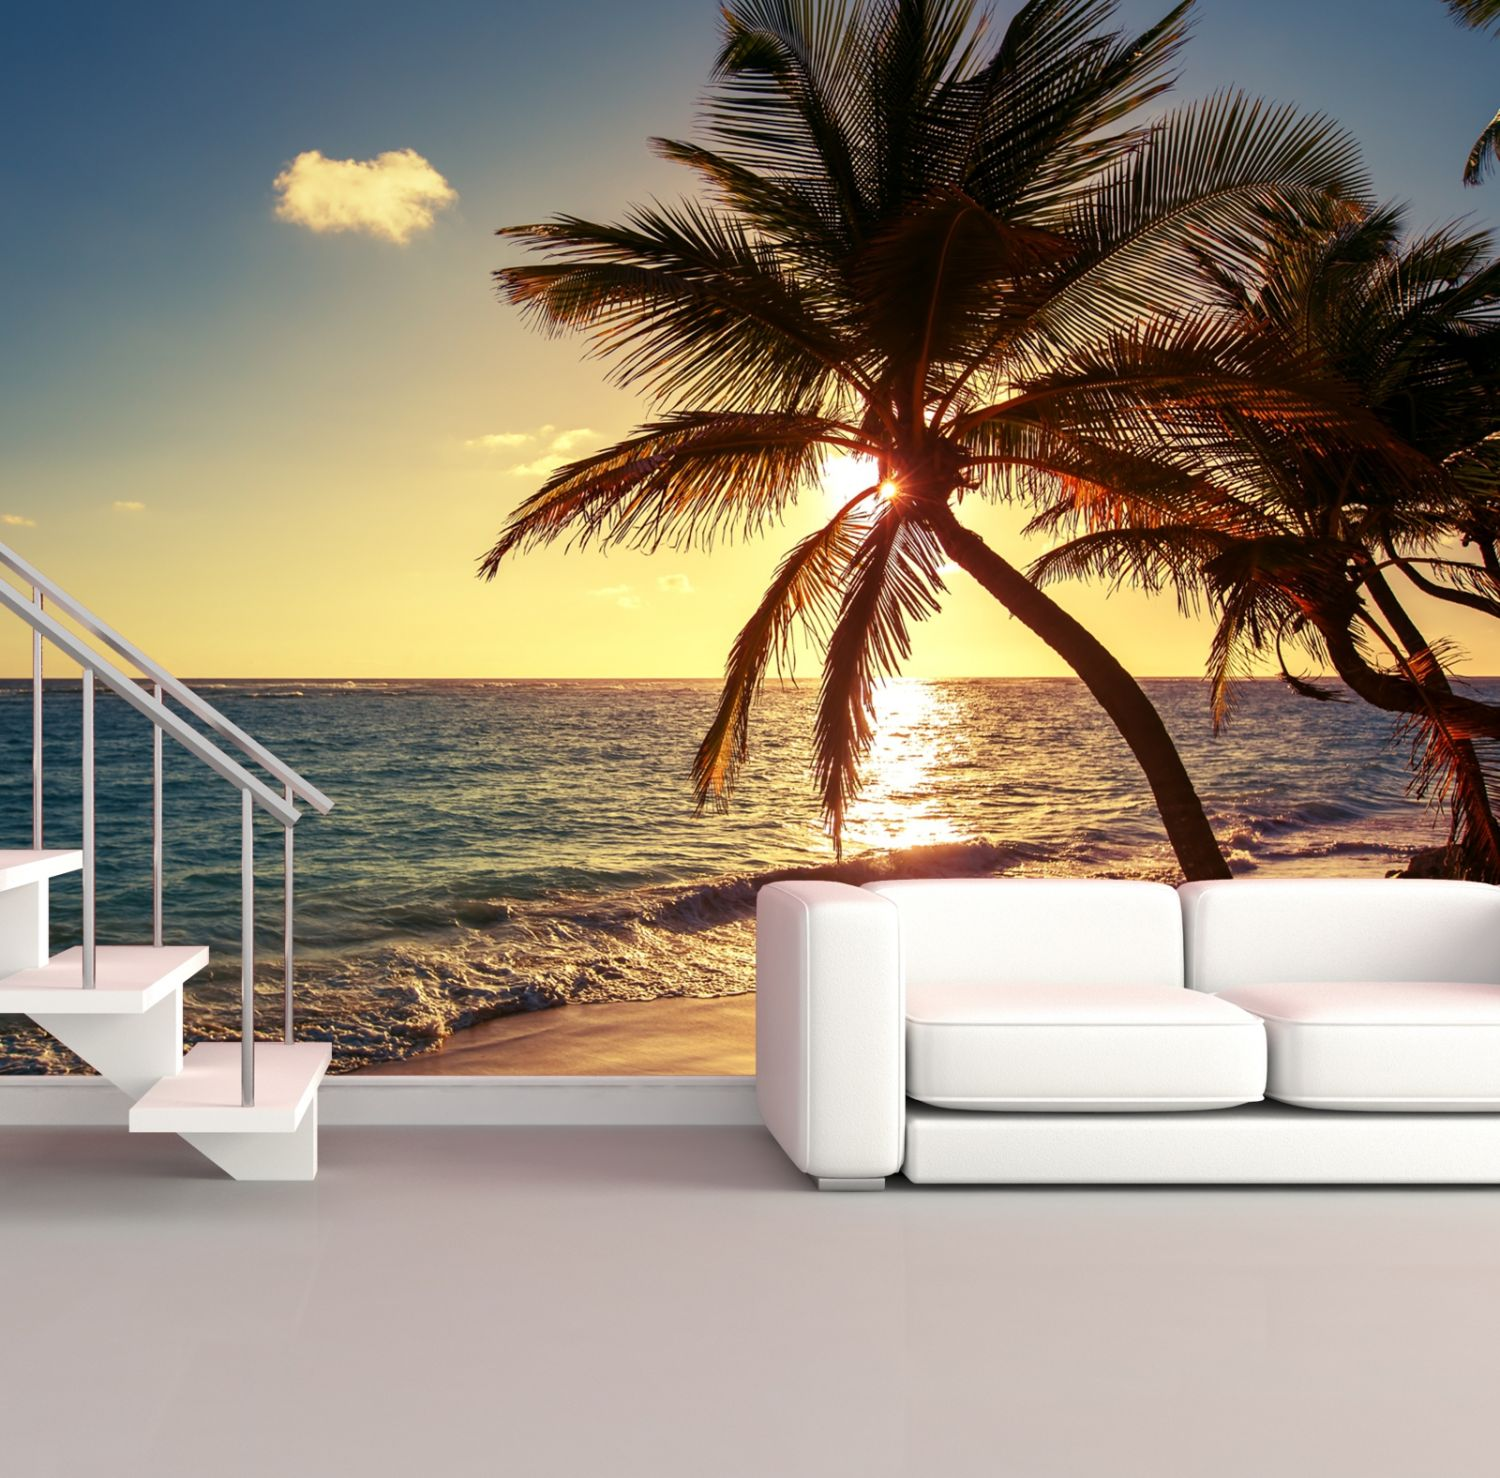 xxl poster fototapete wandtapete vlies natur karibik palmen im sonnenuntergang ebay. Black Bedroom Furniture Sets. Home Design Ideas